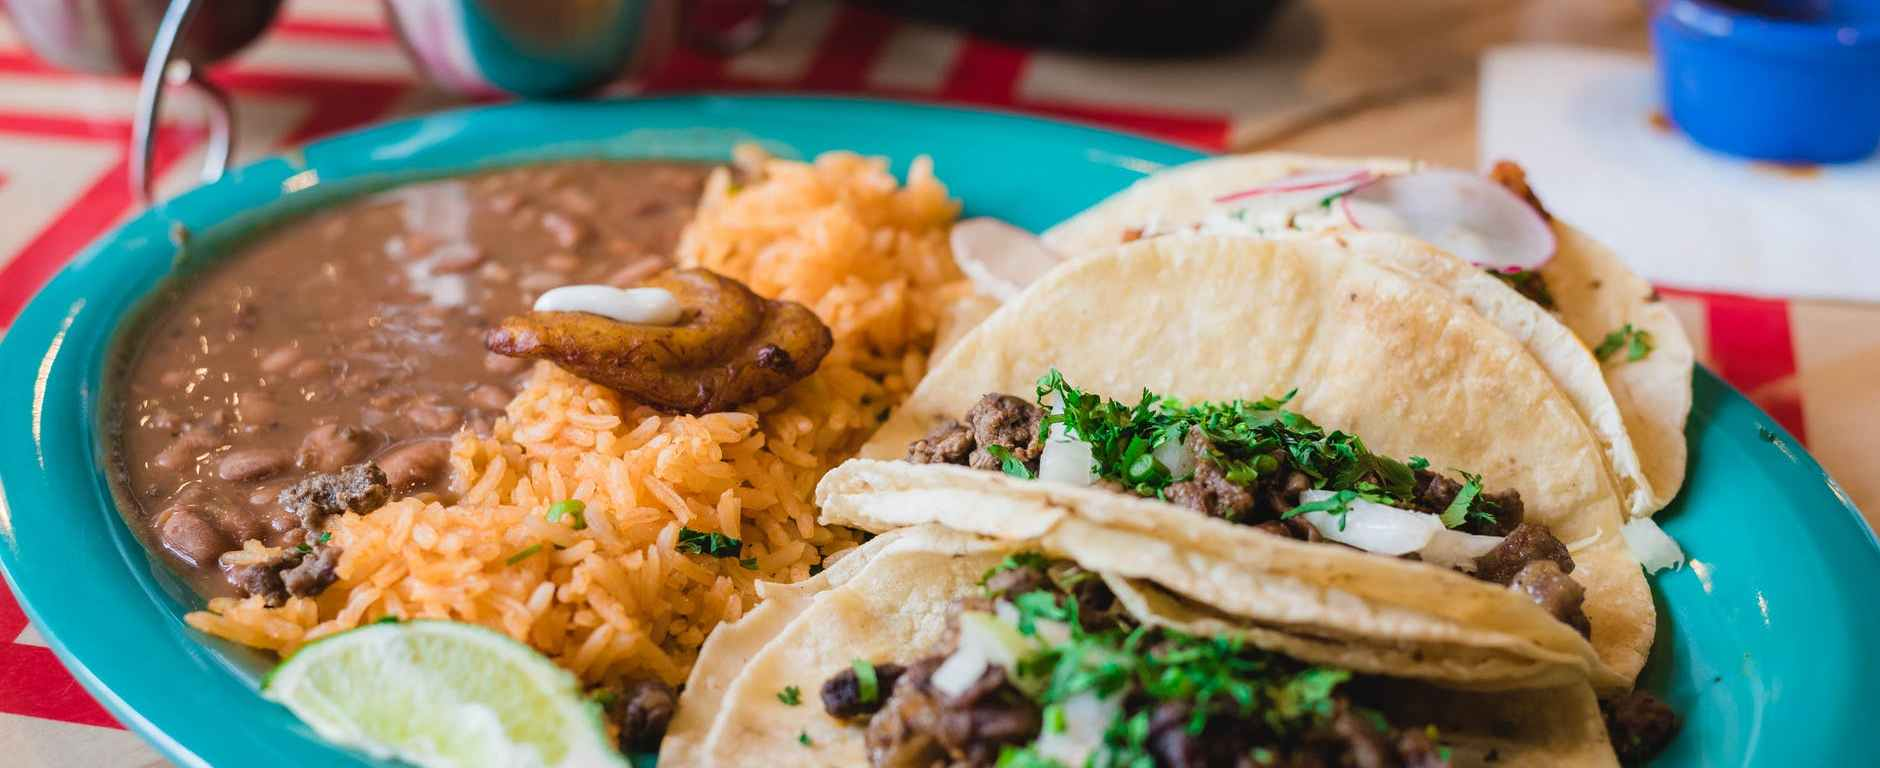 close up photo of rice and tacos